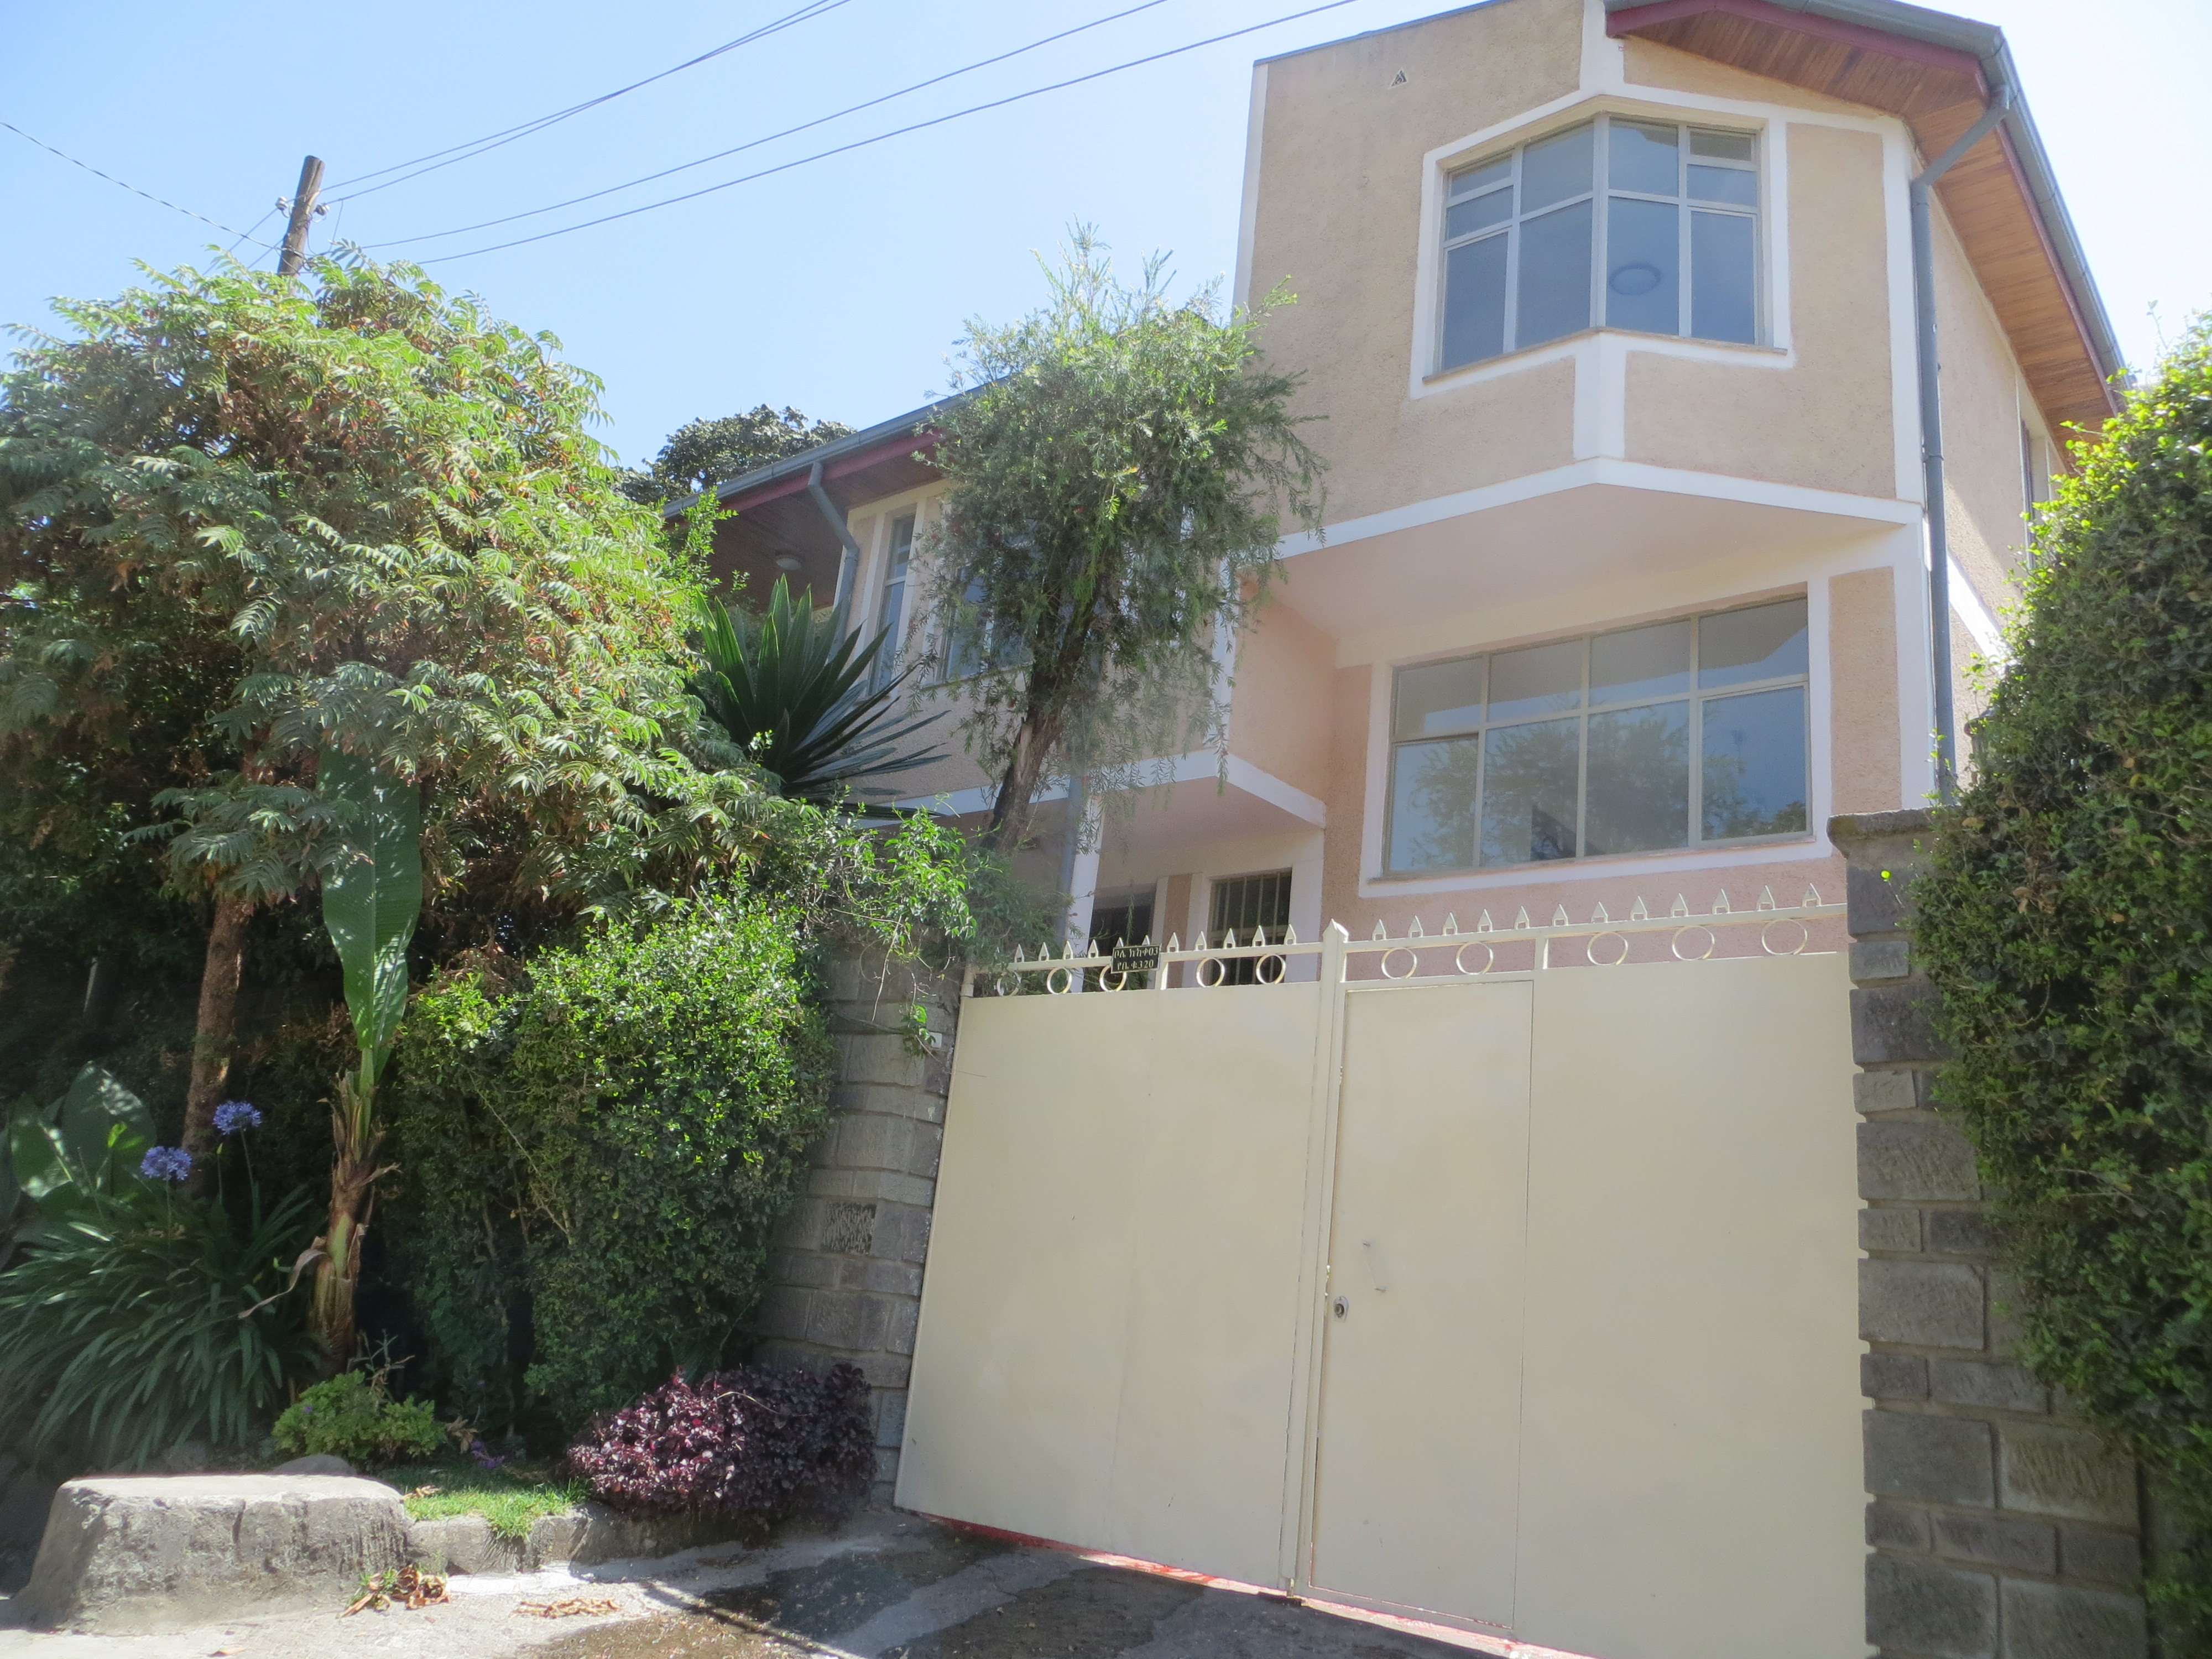 House in a Popular Gated Community